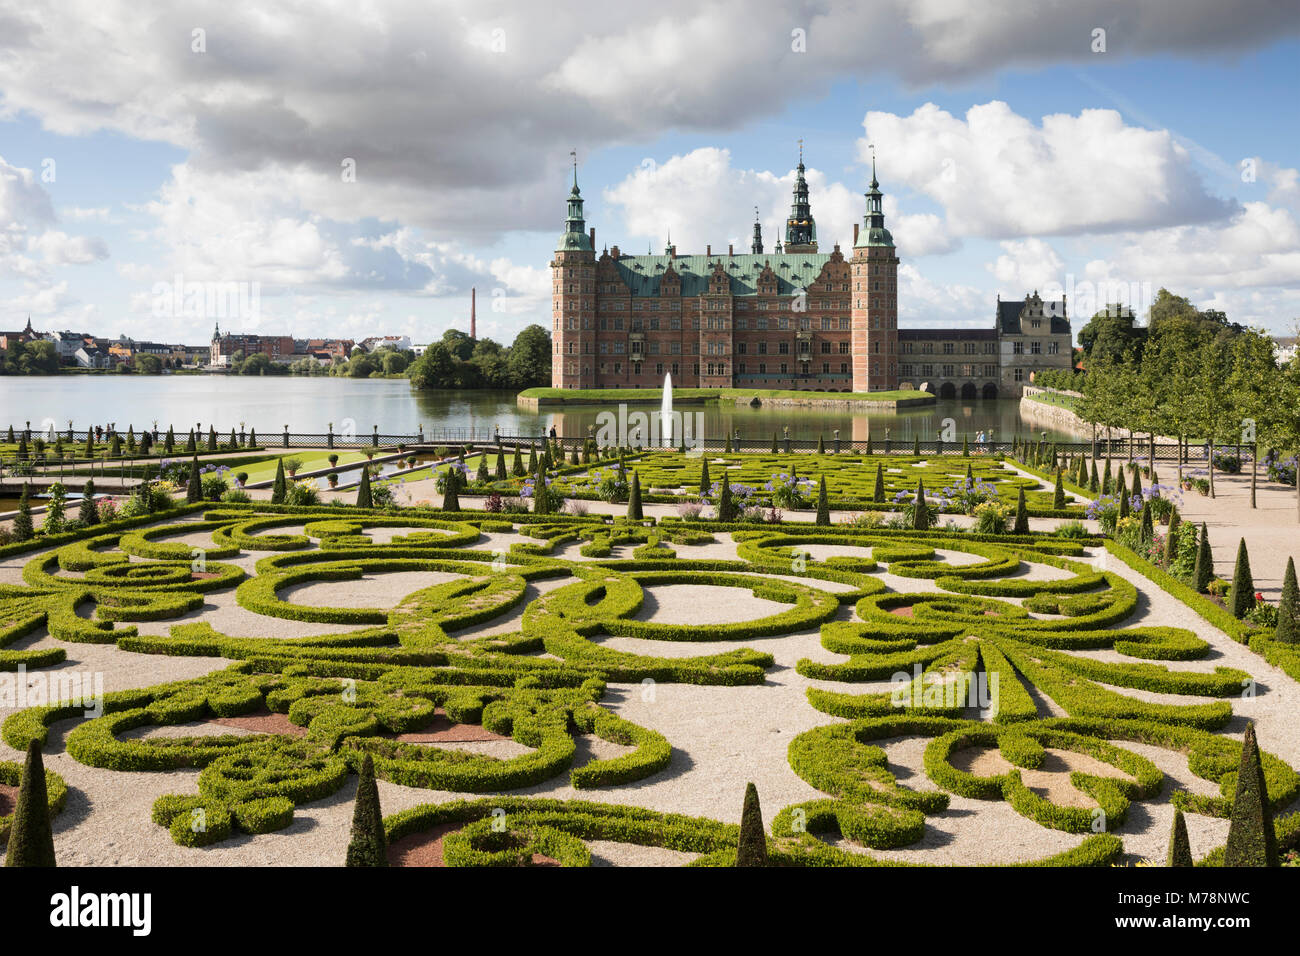 Frederiksborg Slot Castle and the Baroque garden, Hillerod, Zealand, Denmark, Scandinavia, Europe - Stock Image